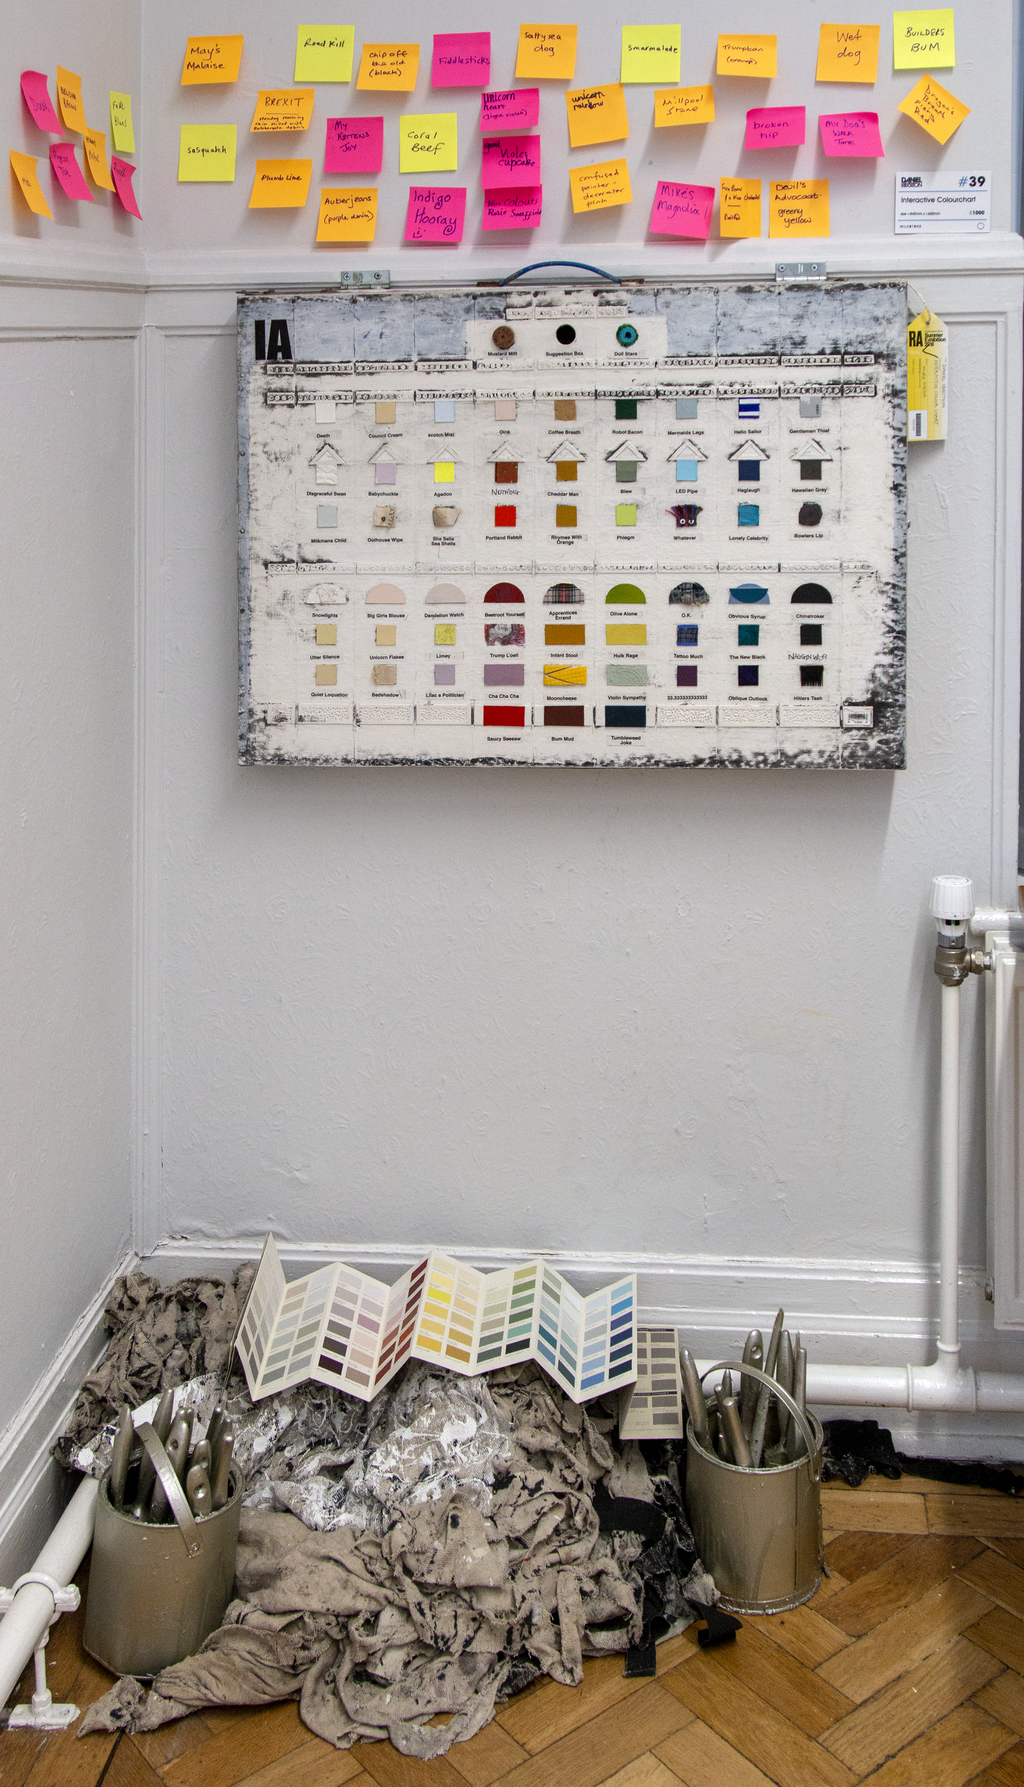 Interactive Colour Chart as displayed during the exhibition